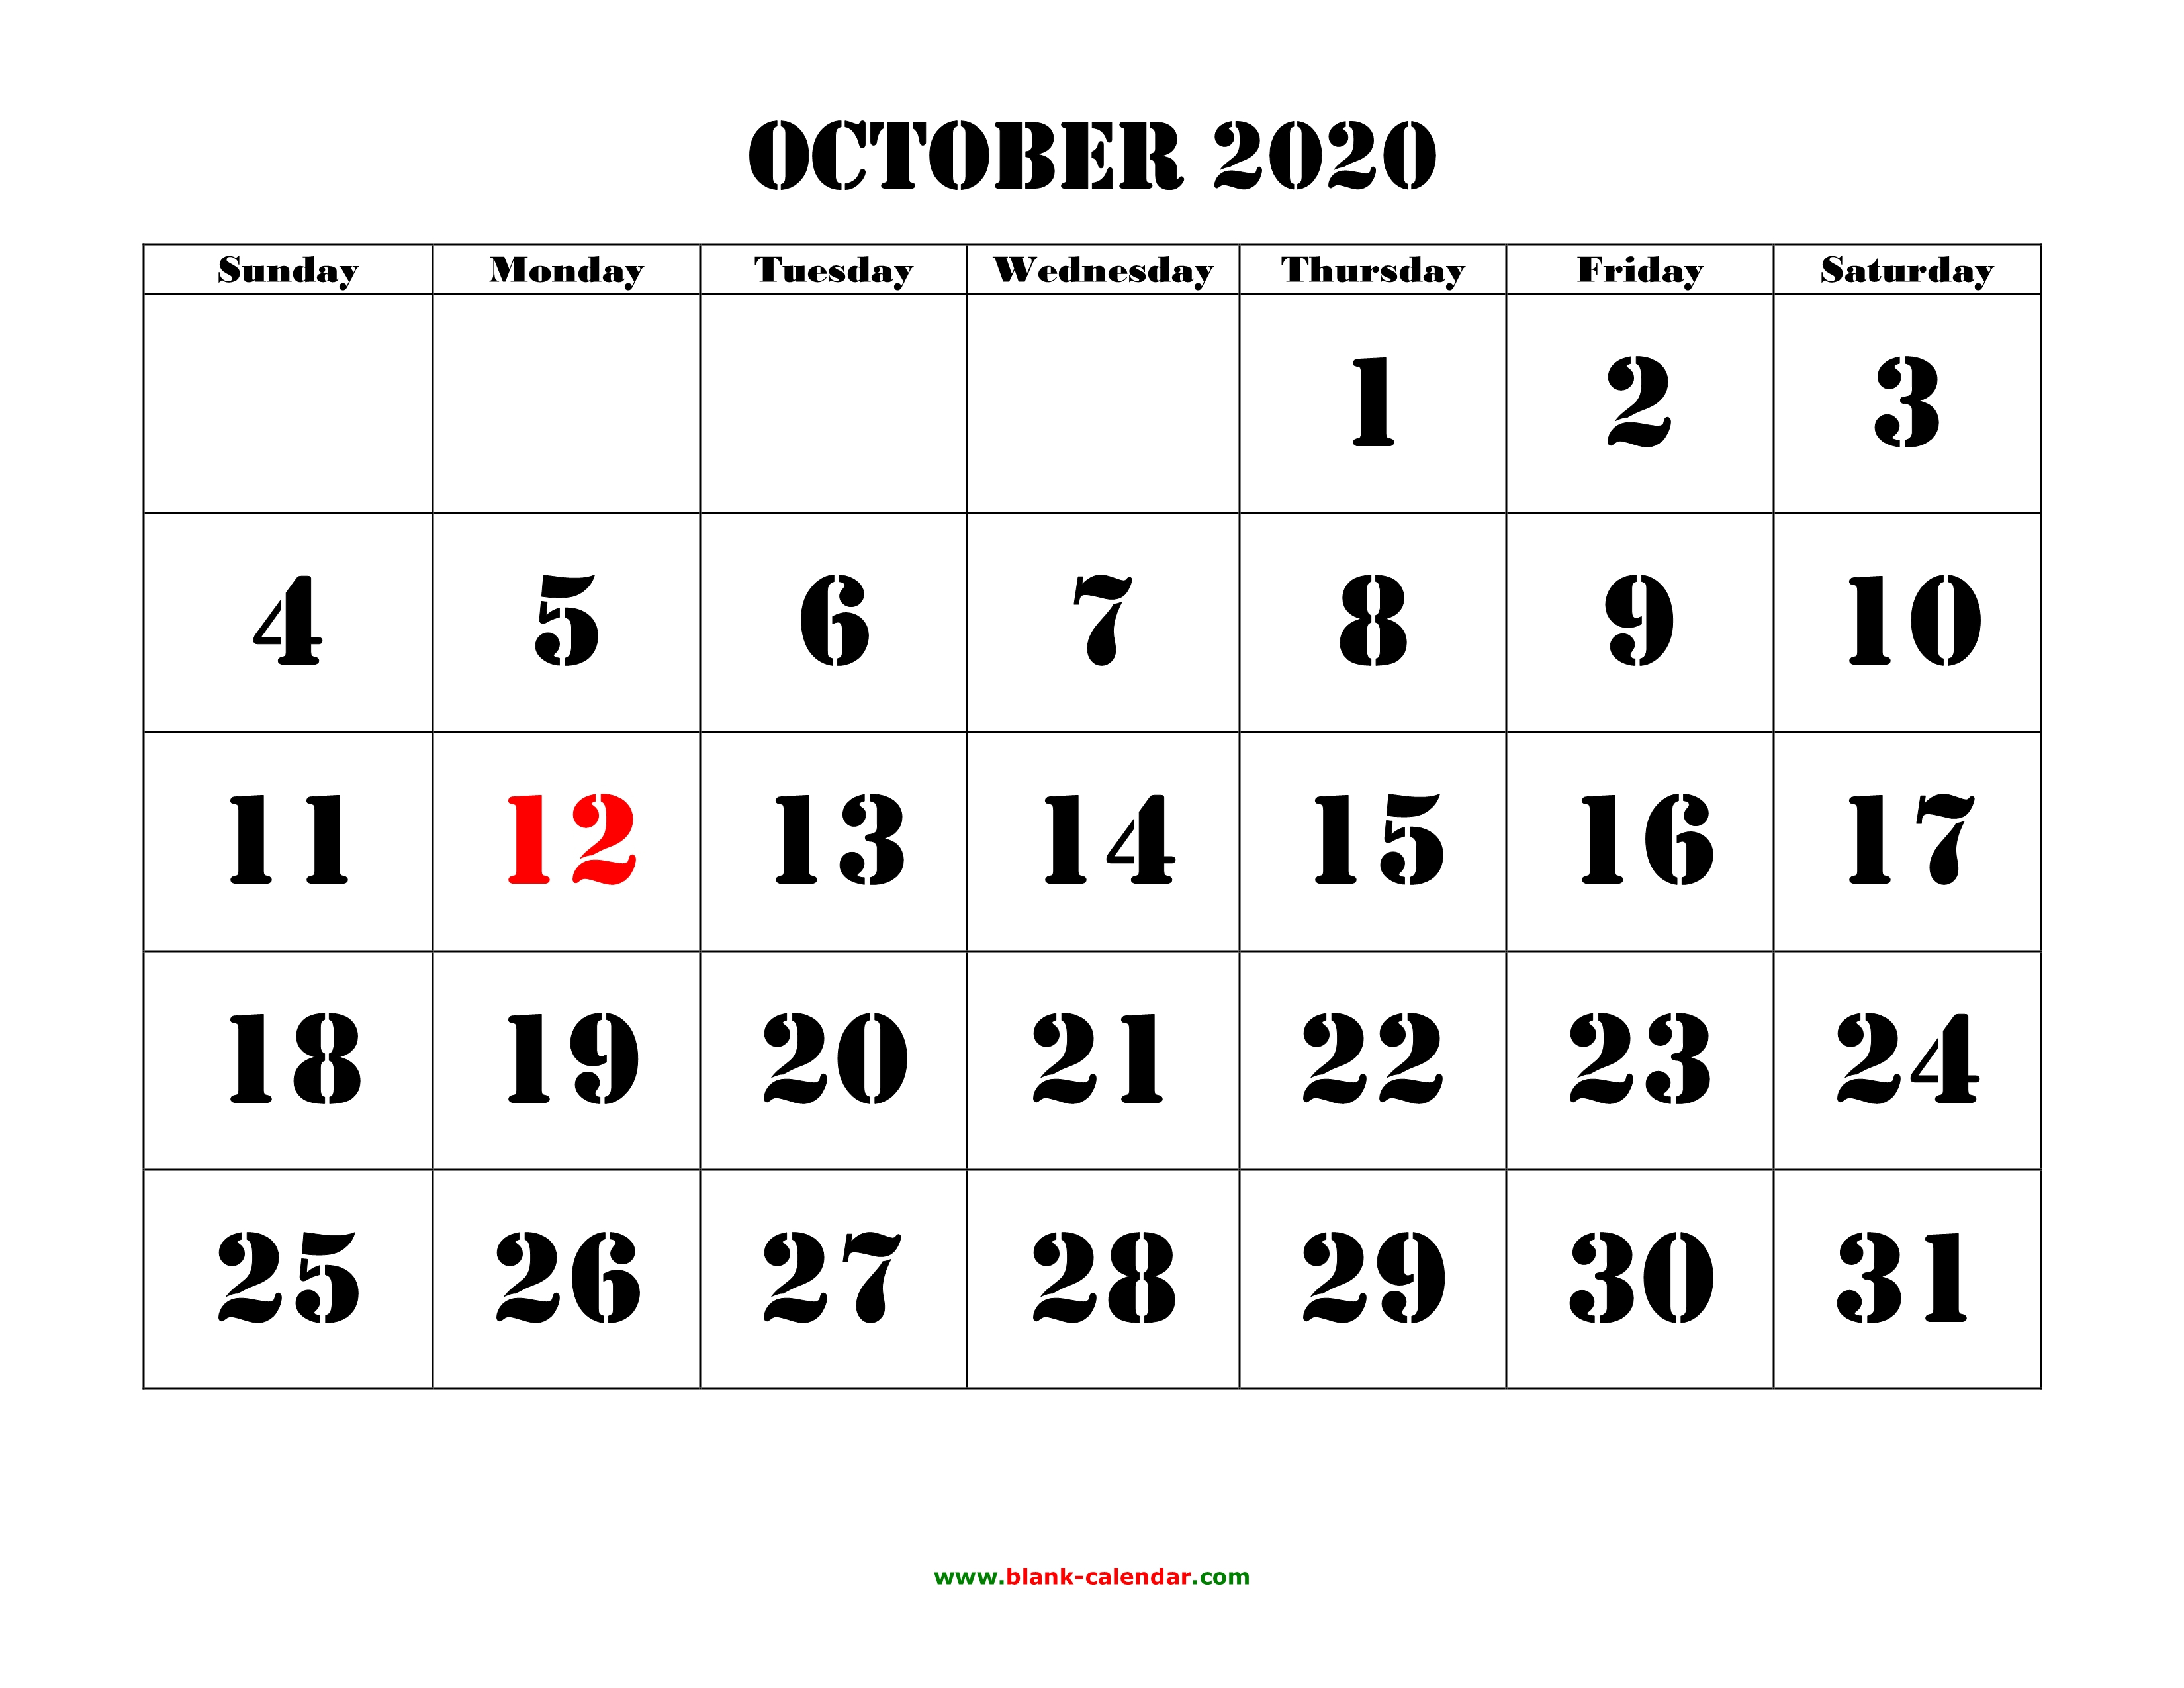 Free Download Printable October 2020 Calendar, Large Font